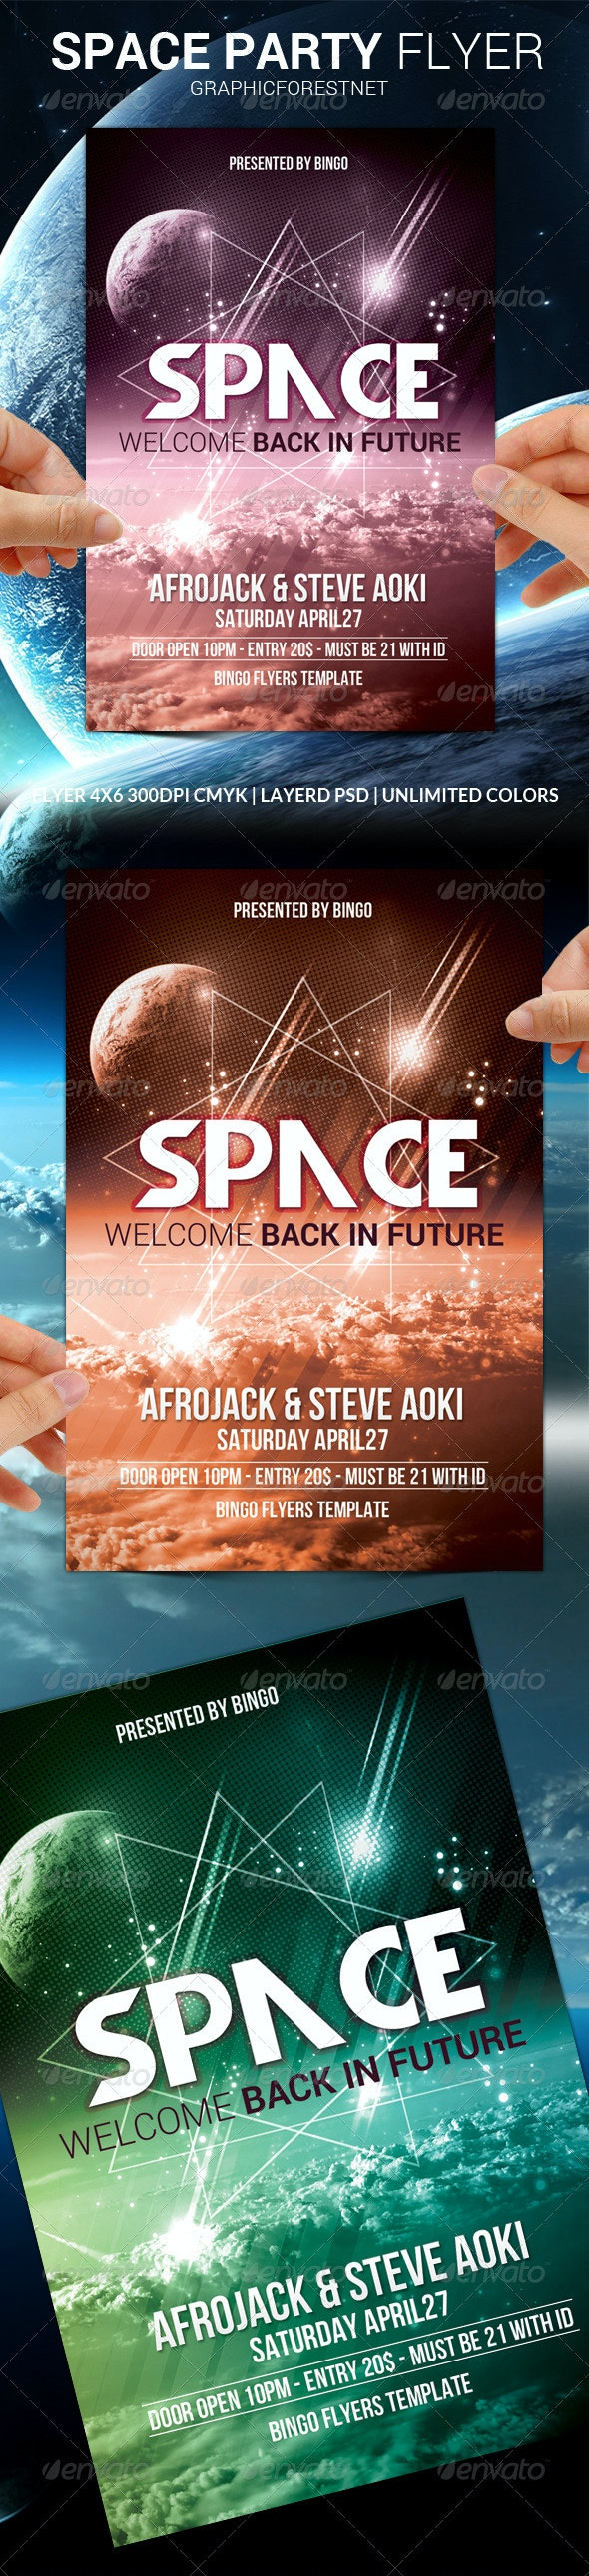 Space Party Flyer Template - Clubs & Parties Events